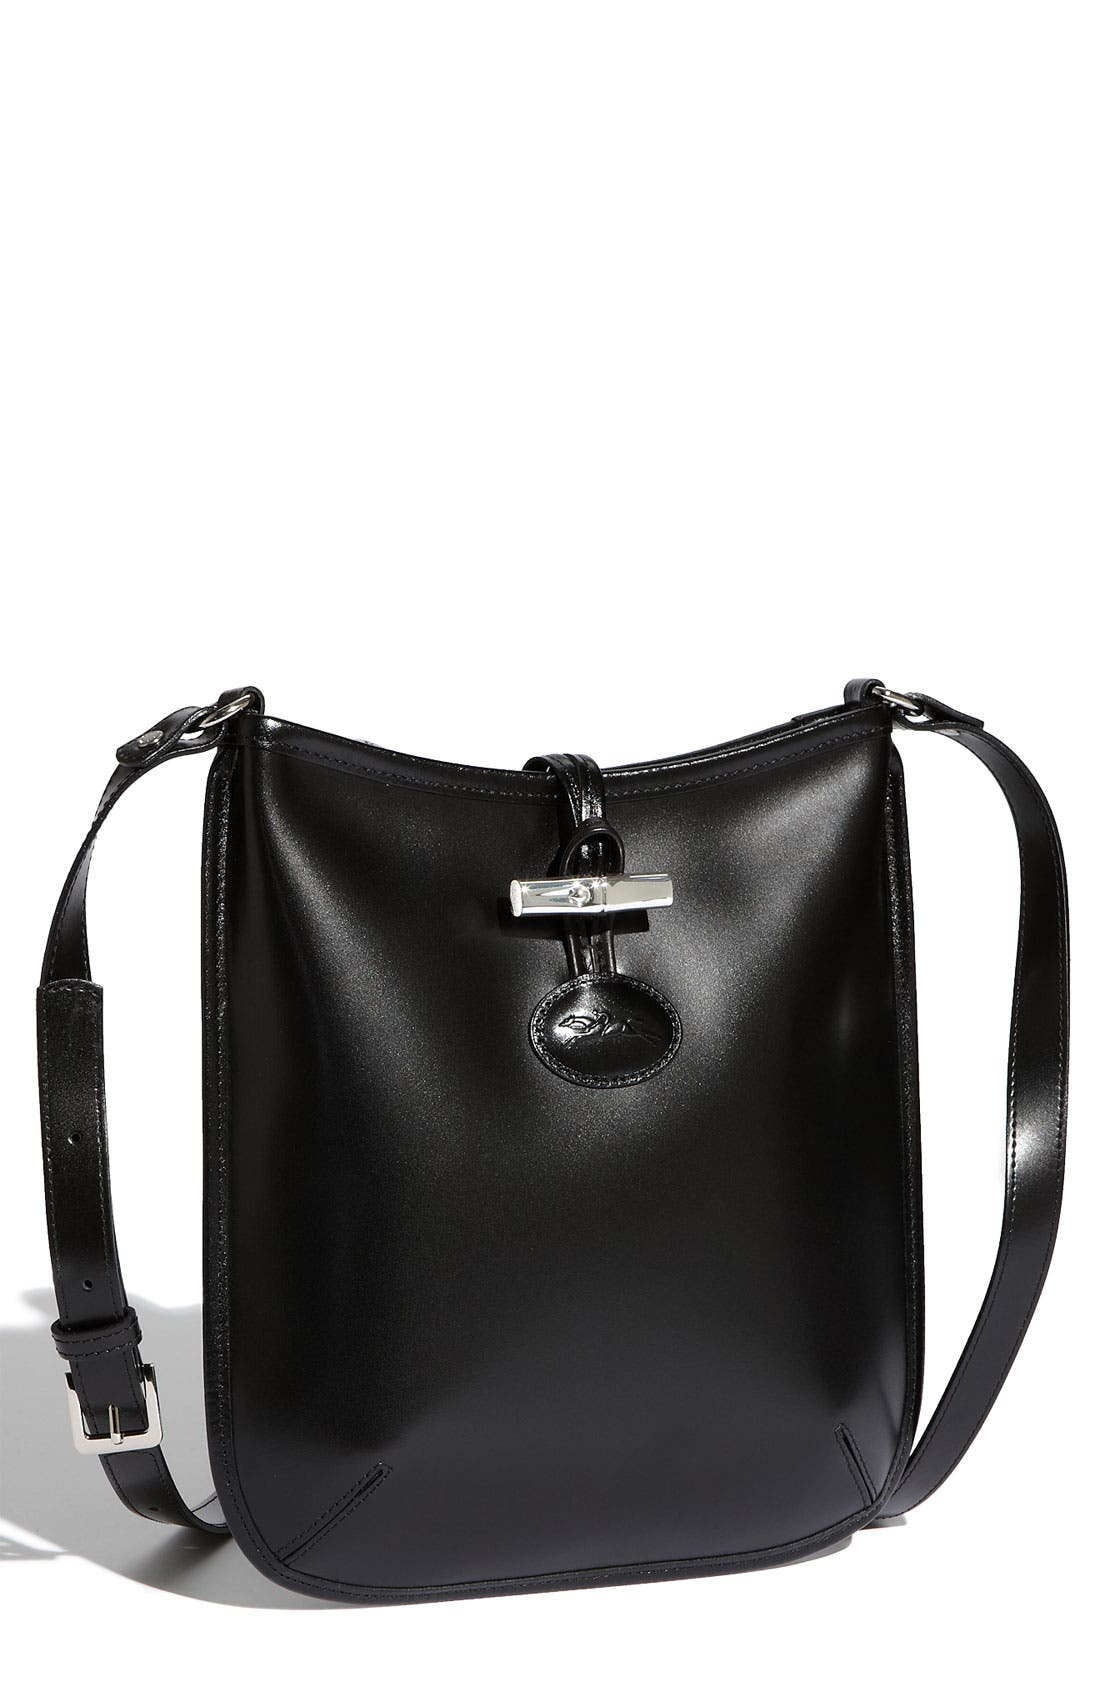 'Roseau' Crossbody Bag, Main, color, 001